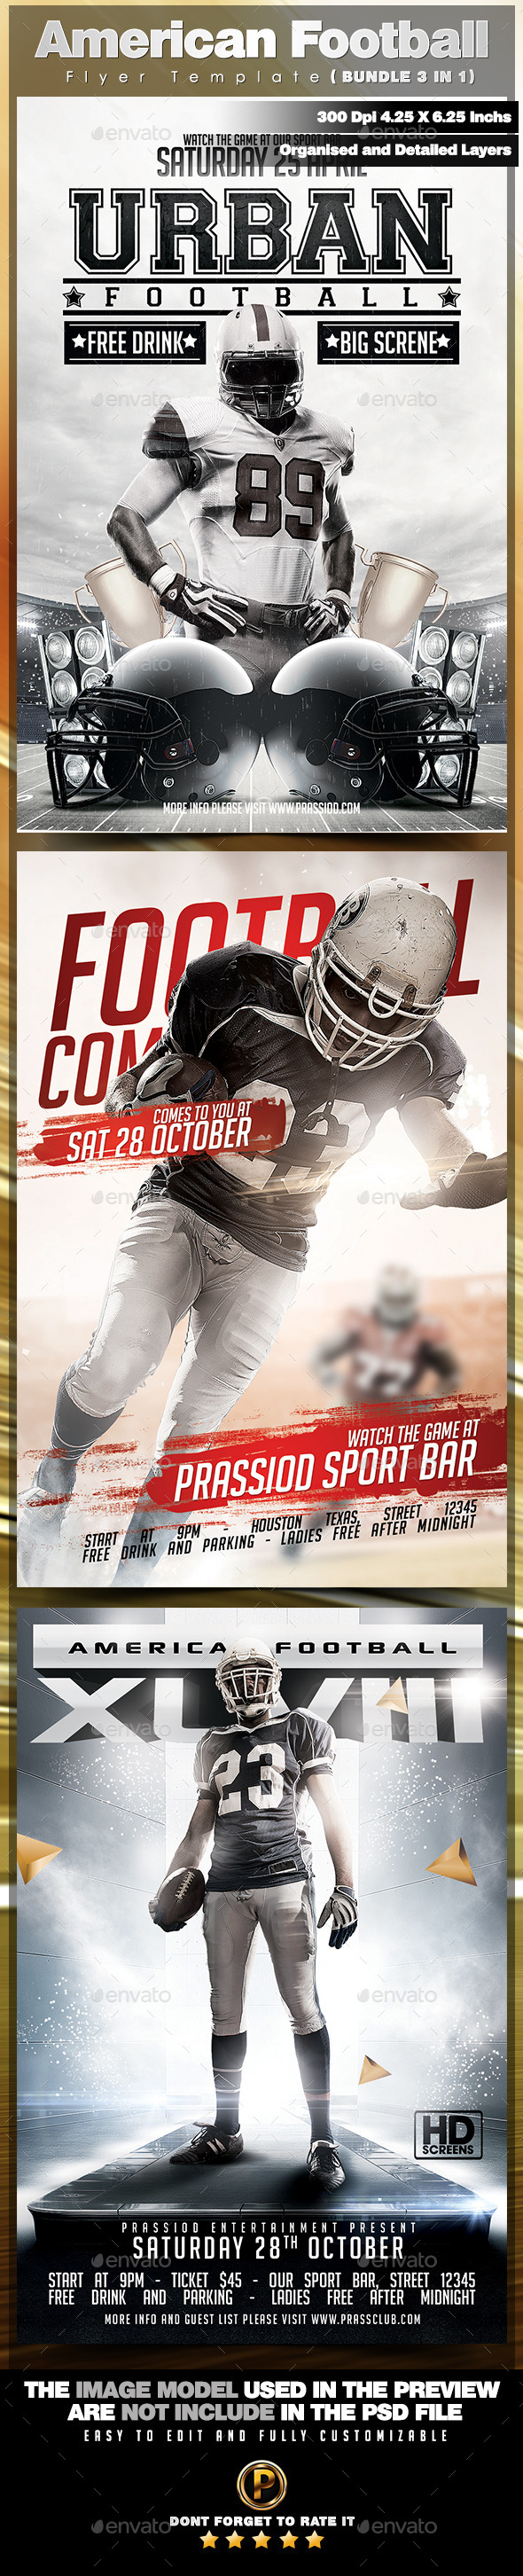 American Football Flyer Template - Bundle 3 in 1 - Sports Events